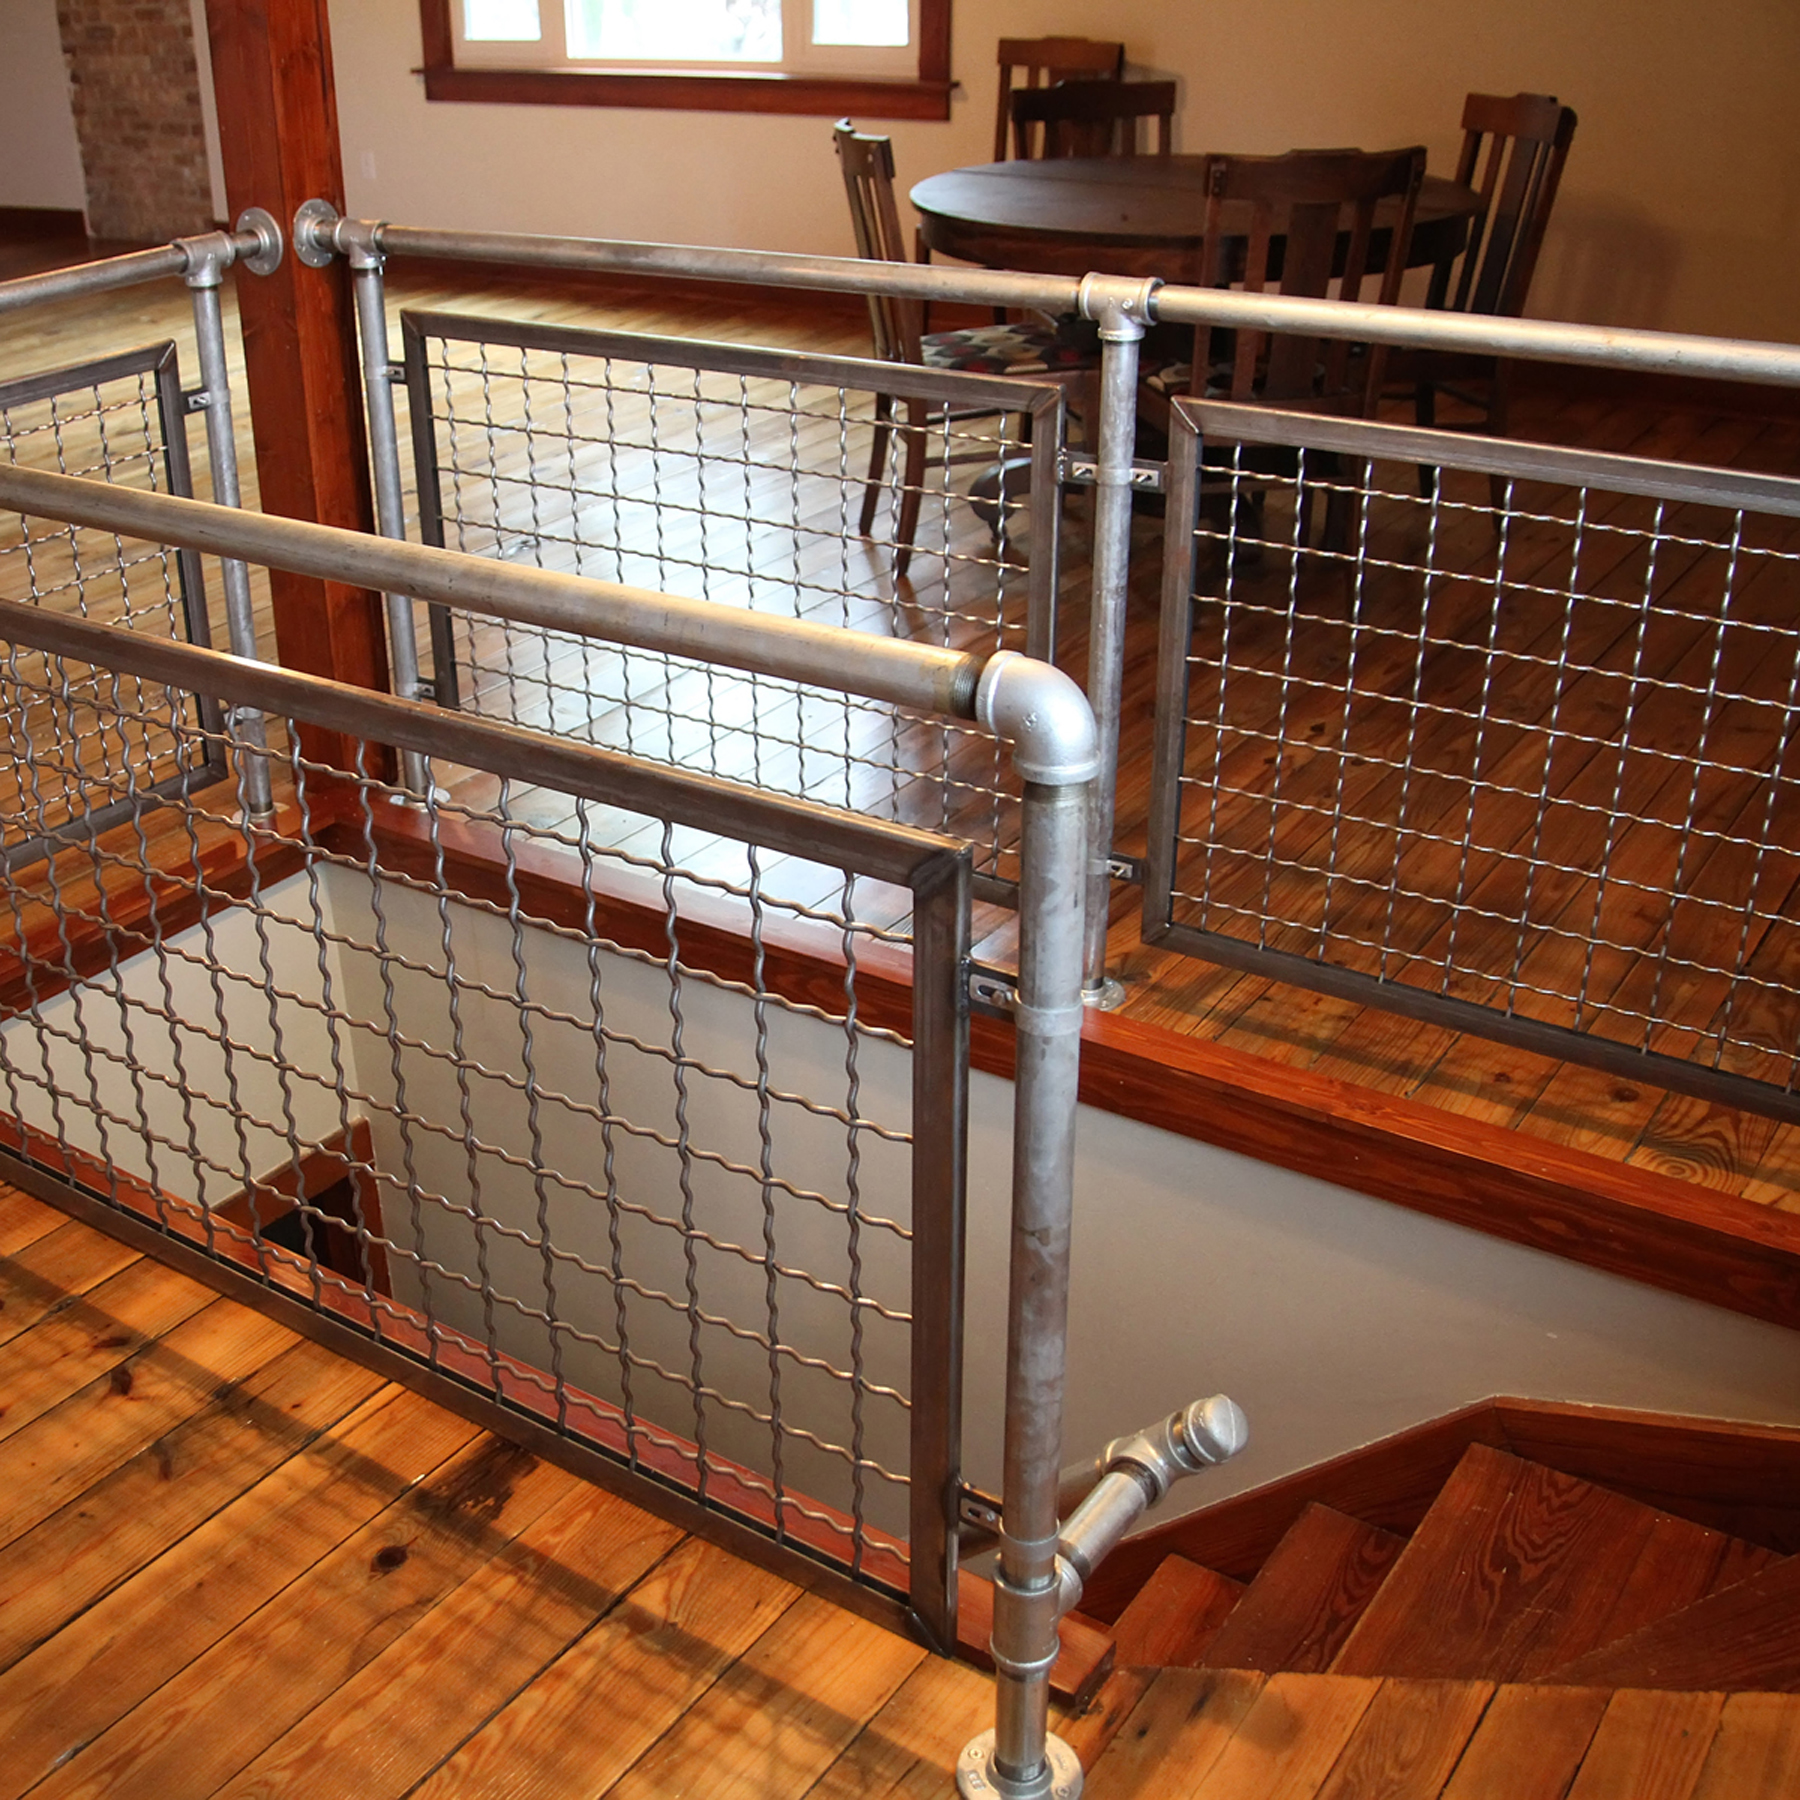 The Banker Wire mesh and U-edge frame harmonize visually with the weathered steel railing and reclaimed barn wood stair treads